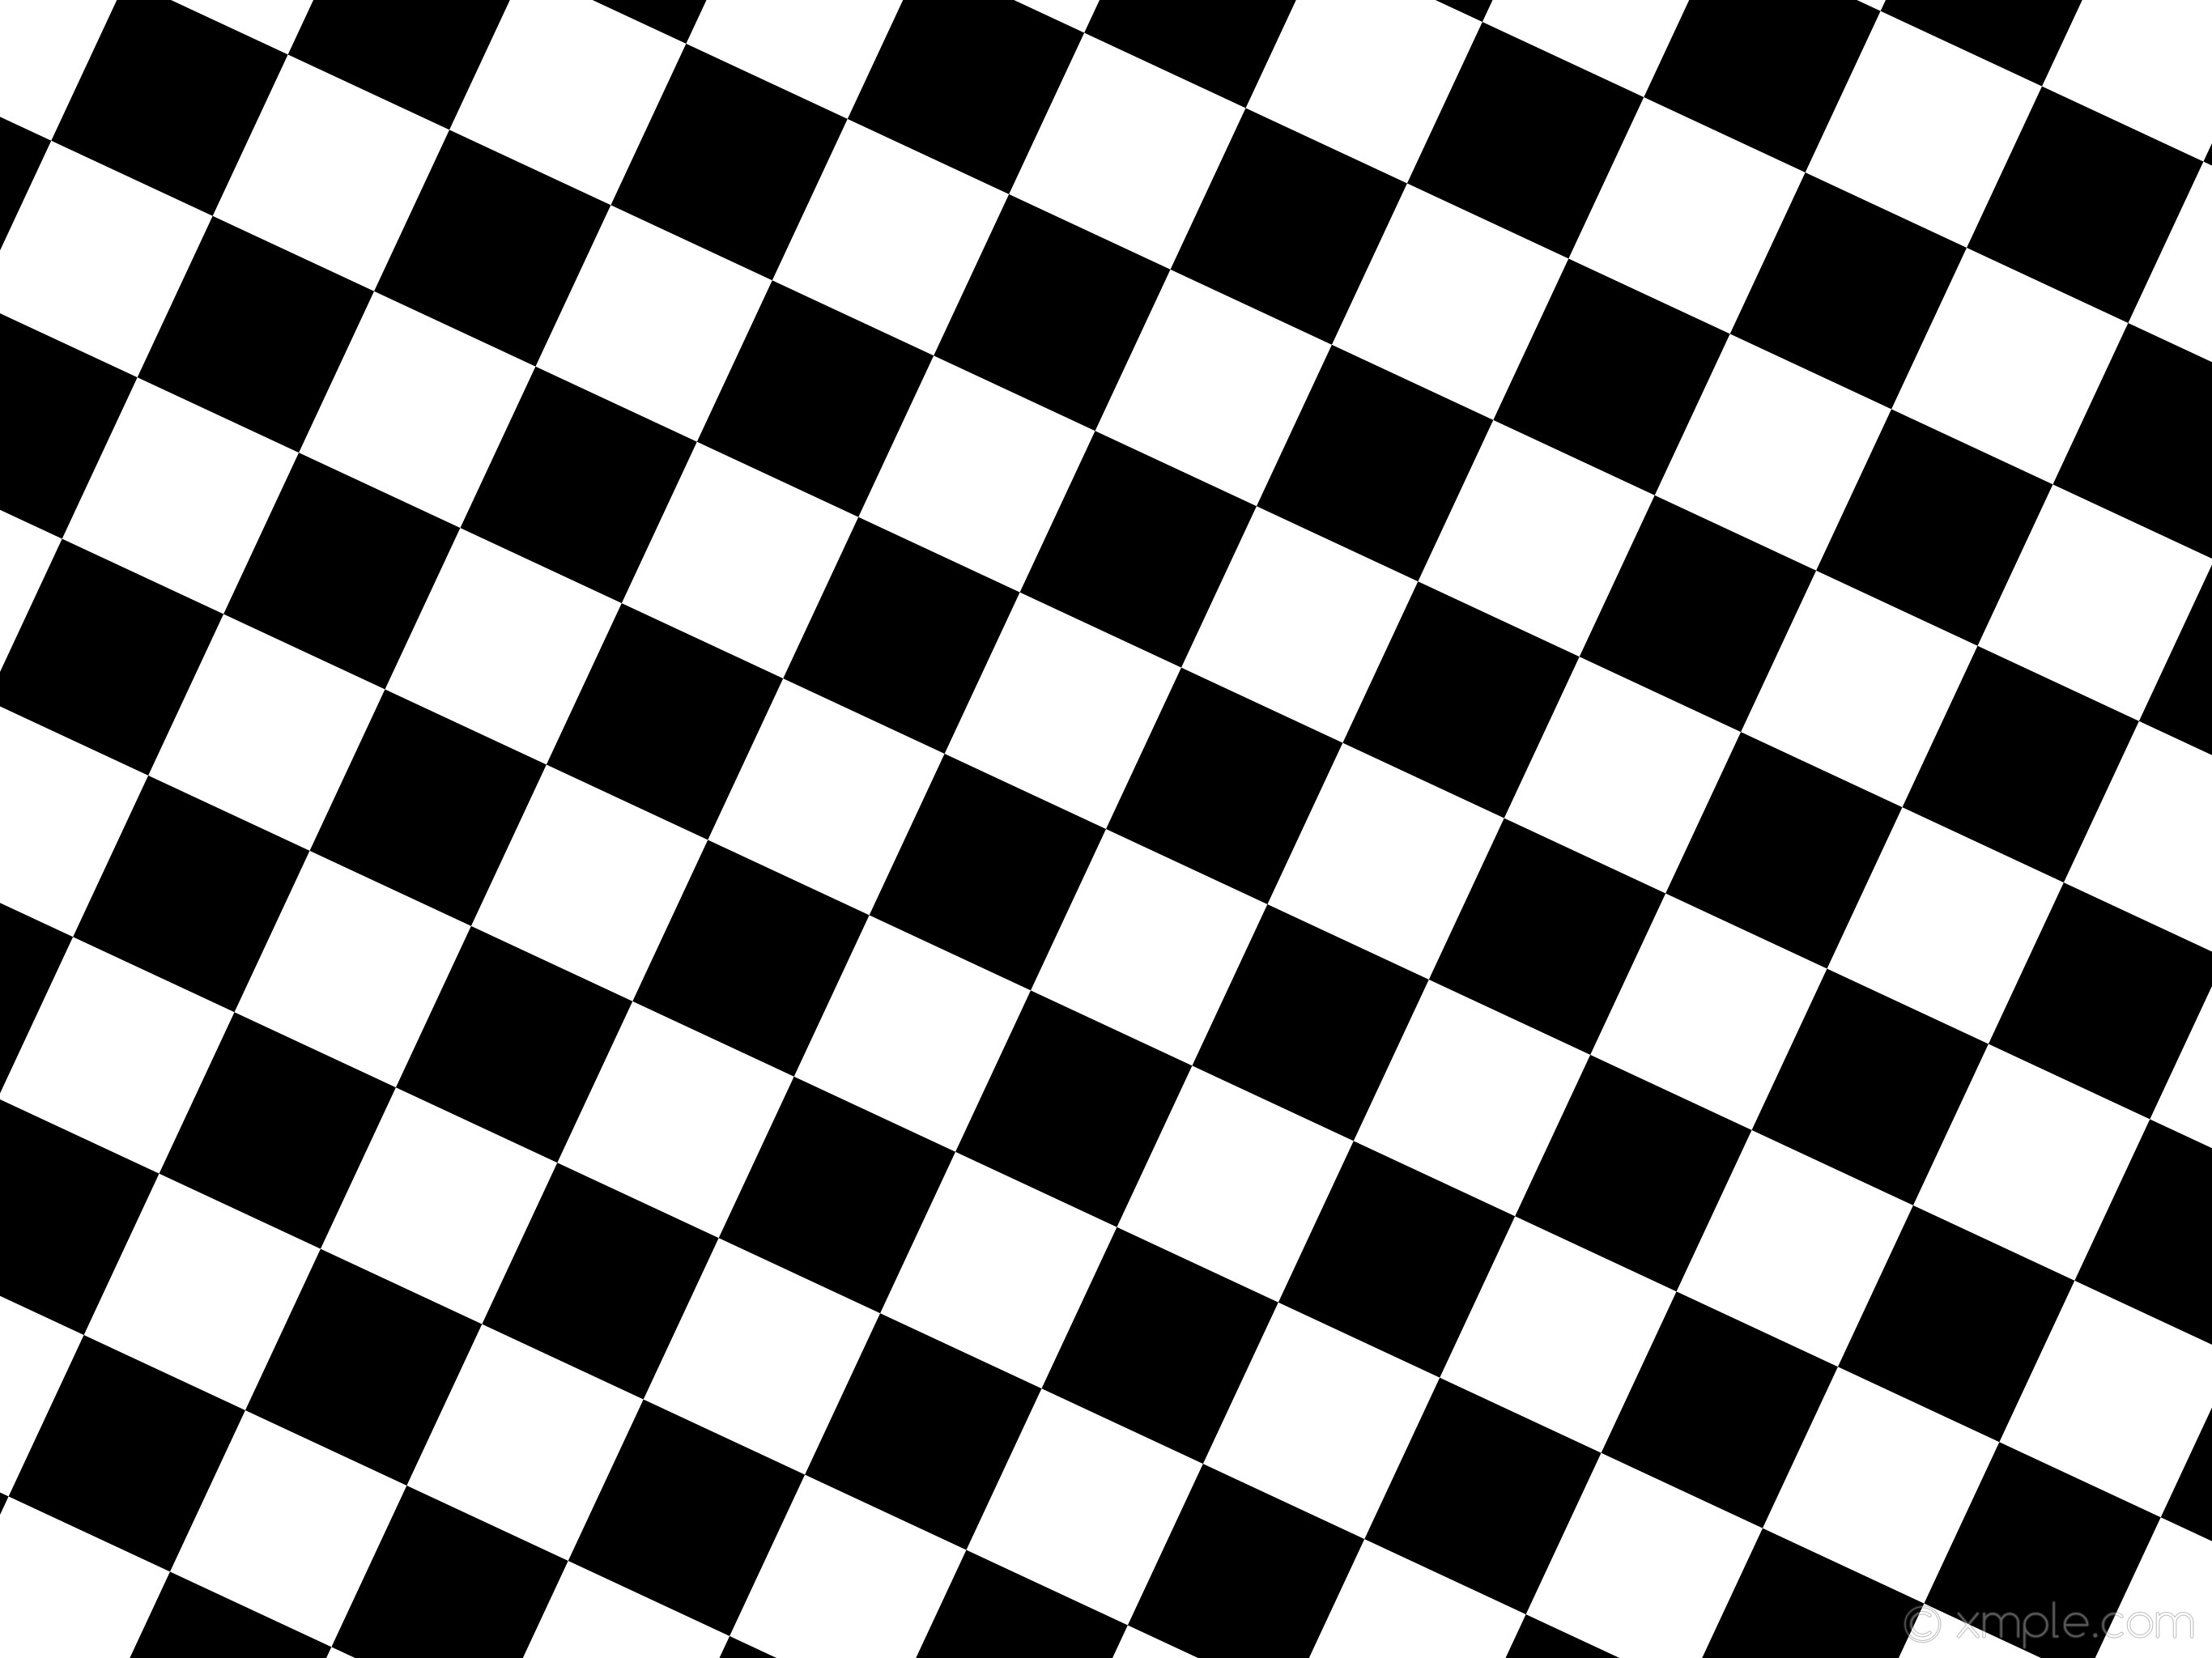 Good Wallpaper Aesthetic Black And White - 232907  Perfect Image Reference_73389      .jpg